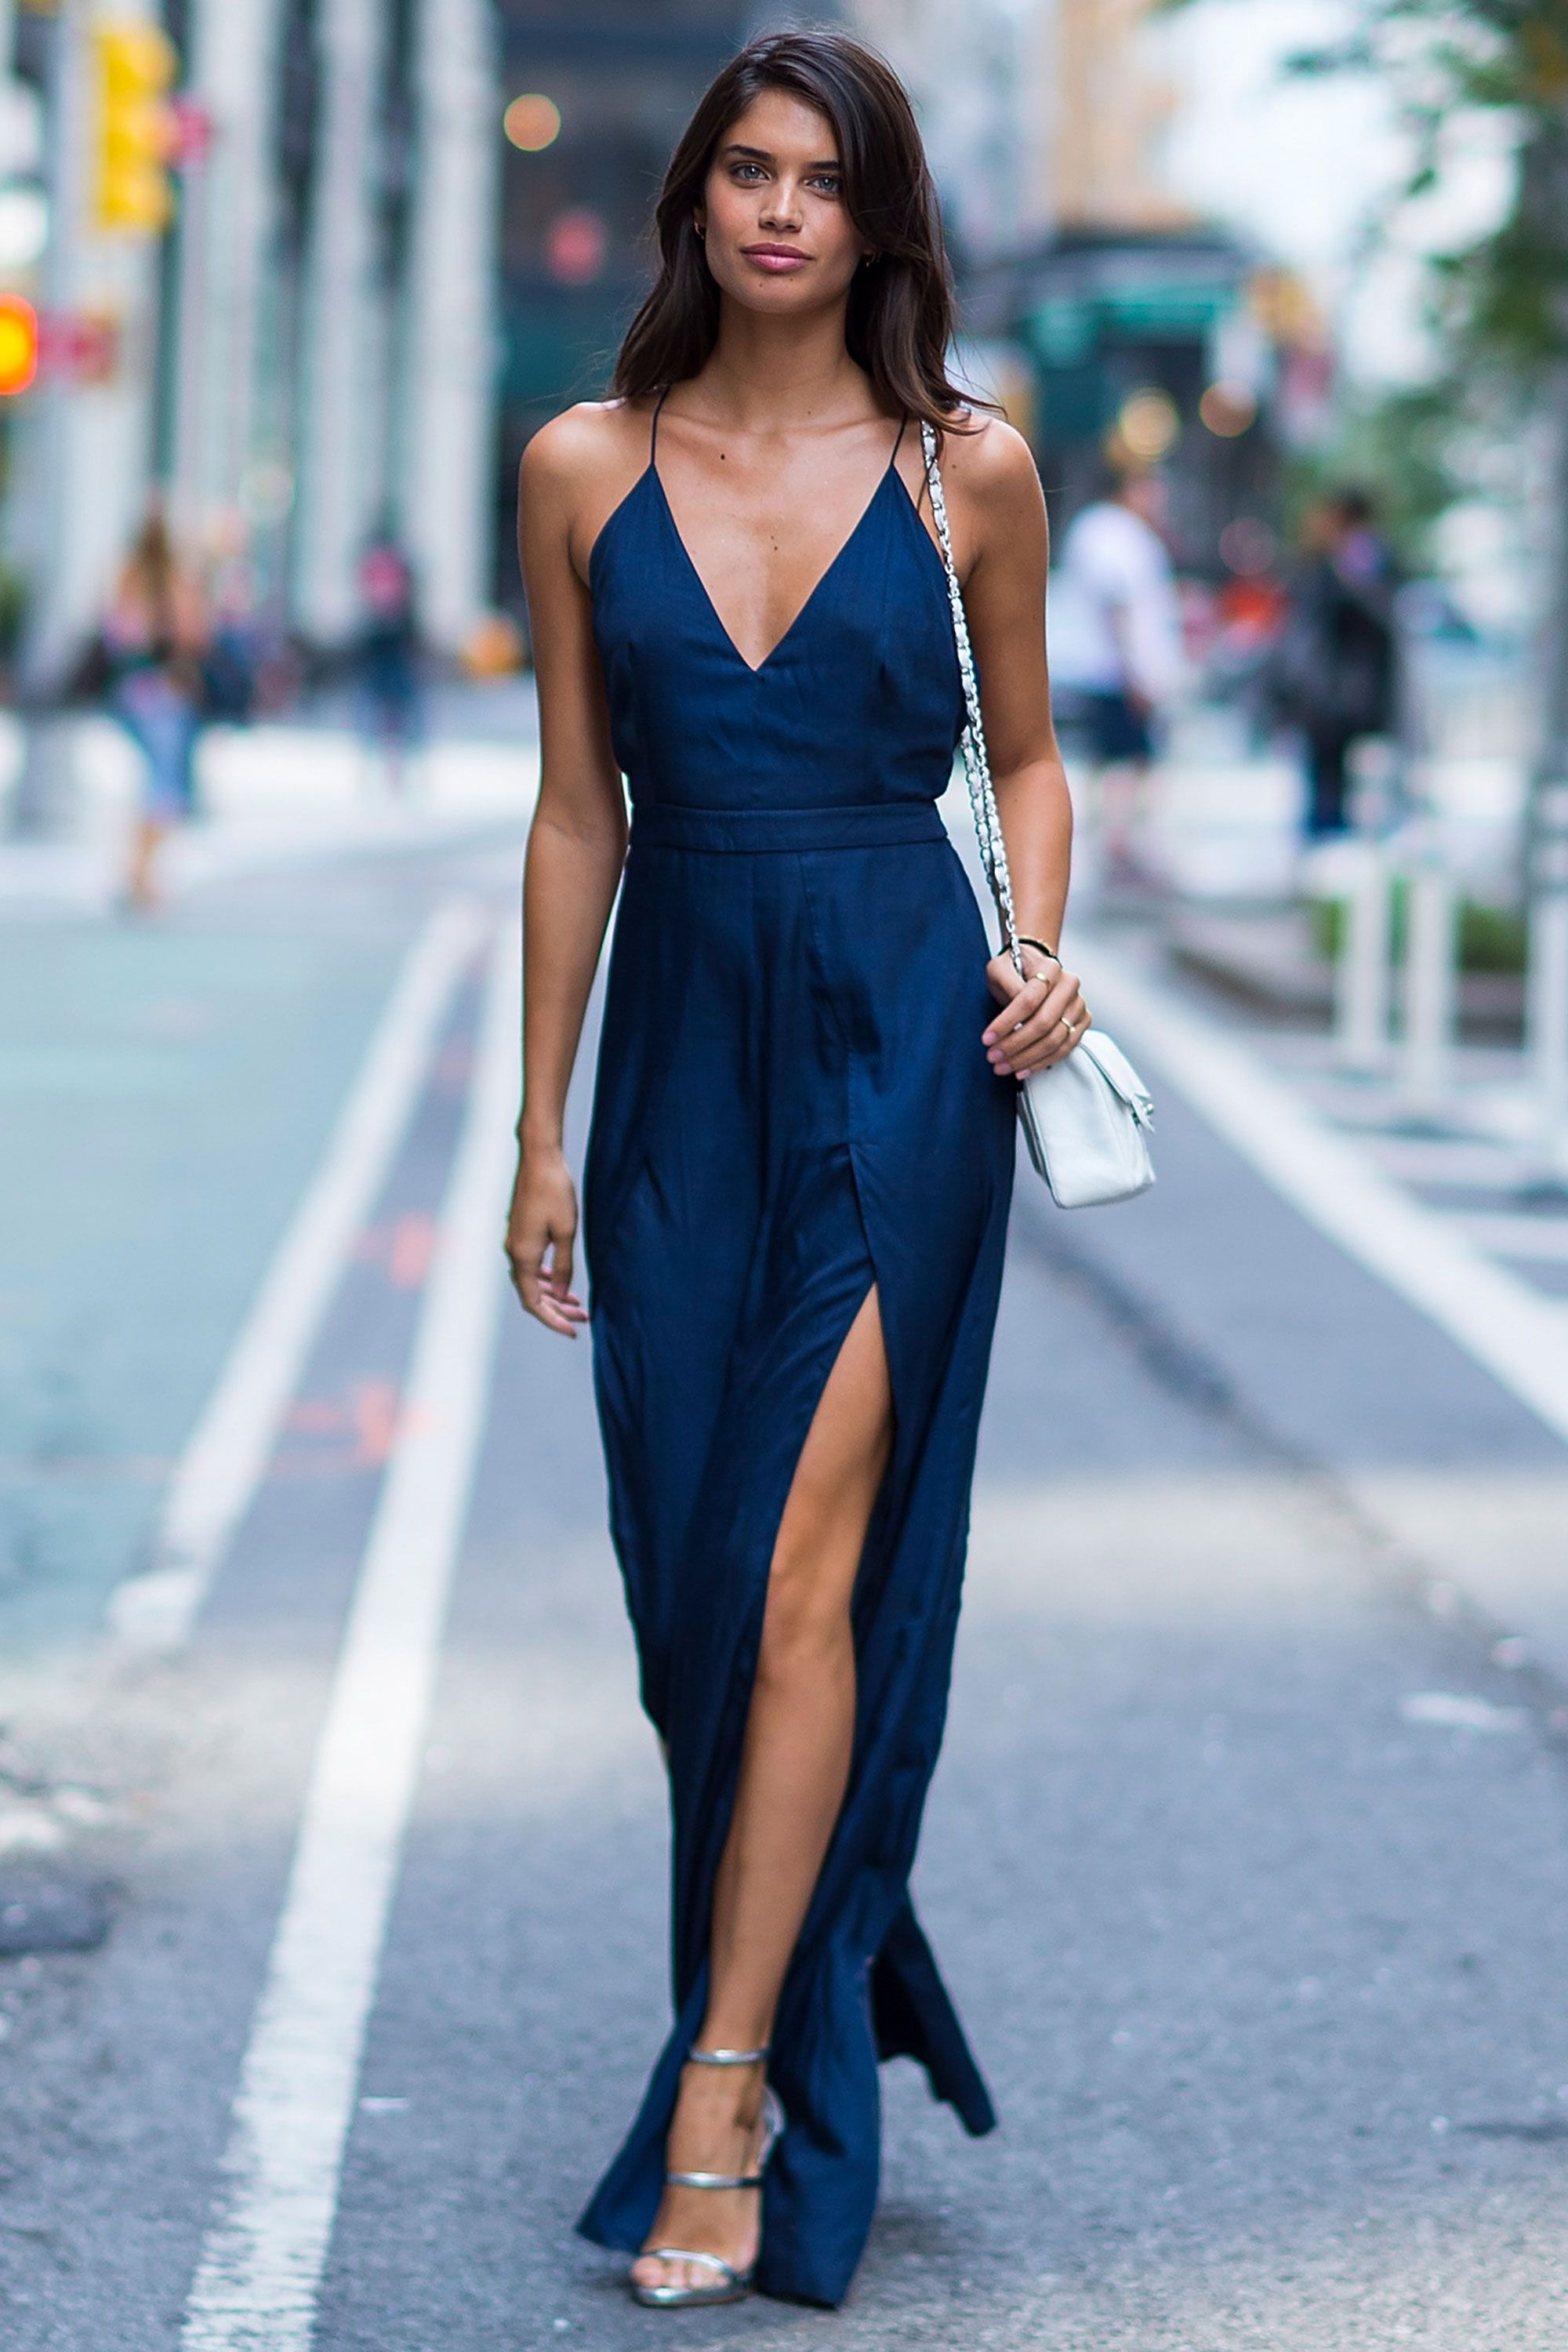 What To Wear With Blue Dresses 2021 Fashiontrendwalk Com